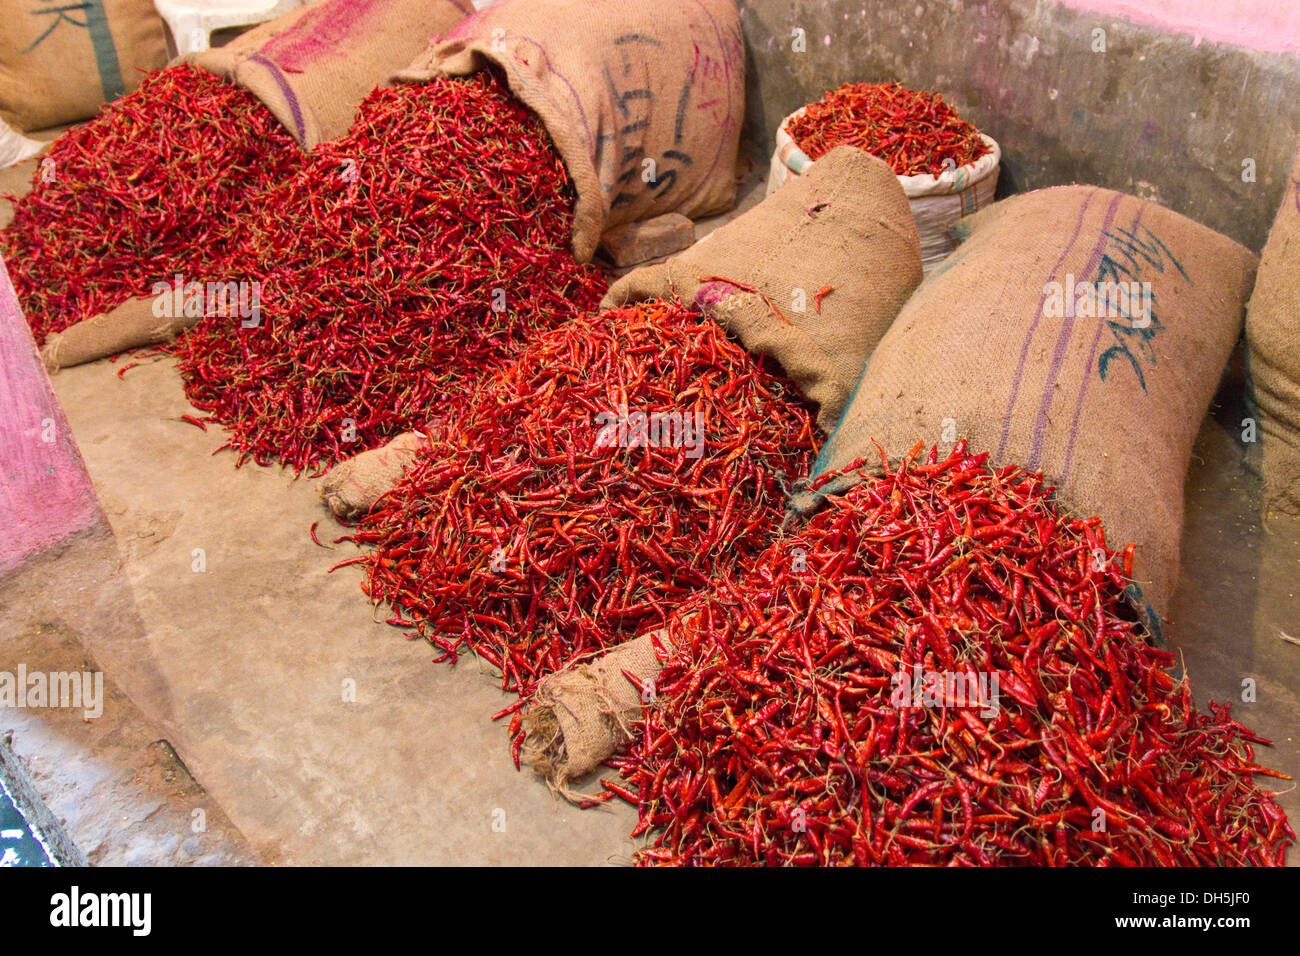 Dried chili peppers, bags, spice market, Old Dhaka, Dhaka, Bangladesh, South Asia - Stock Image